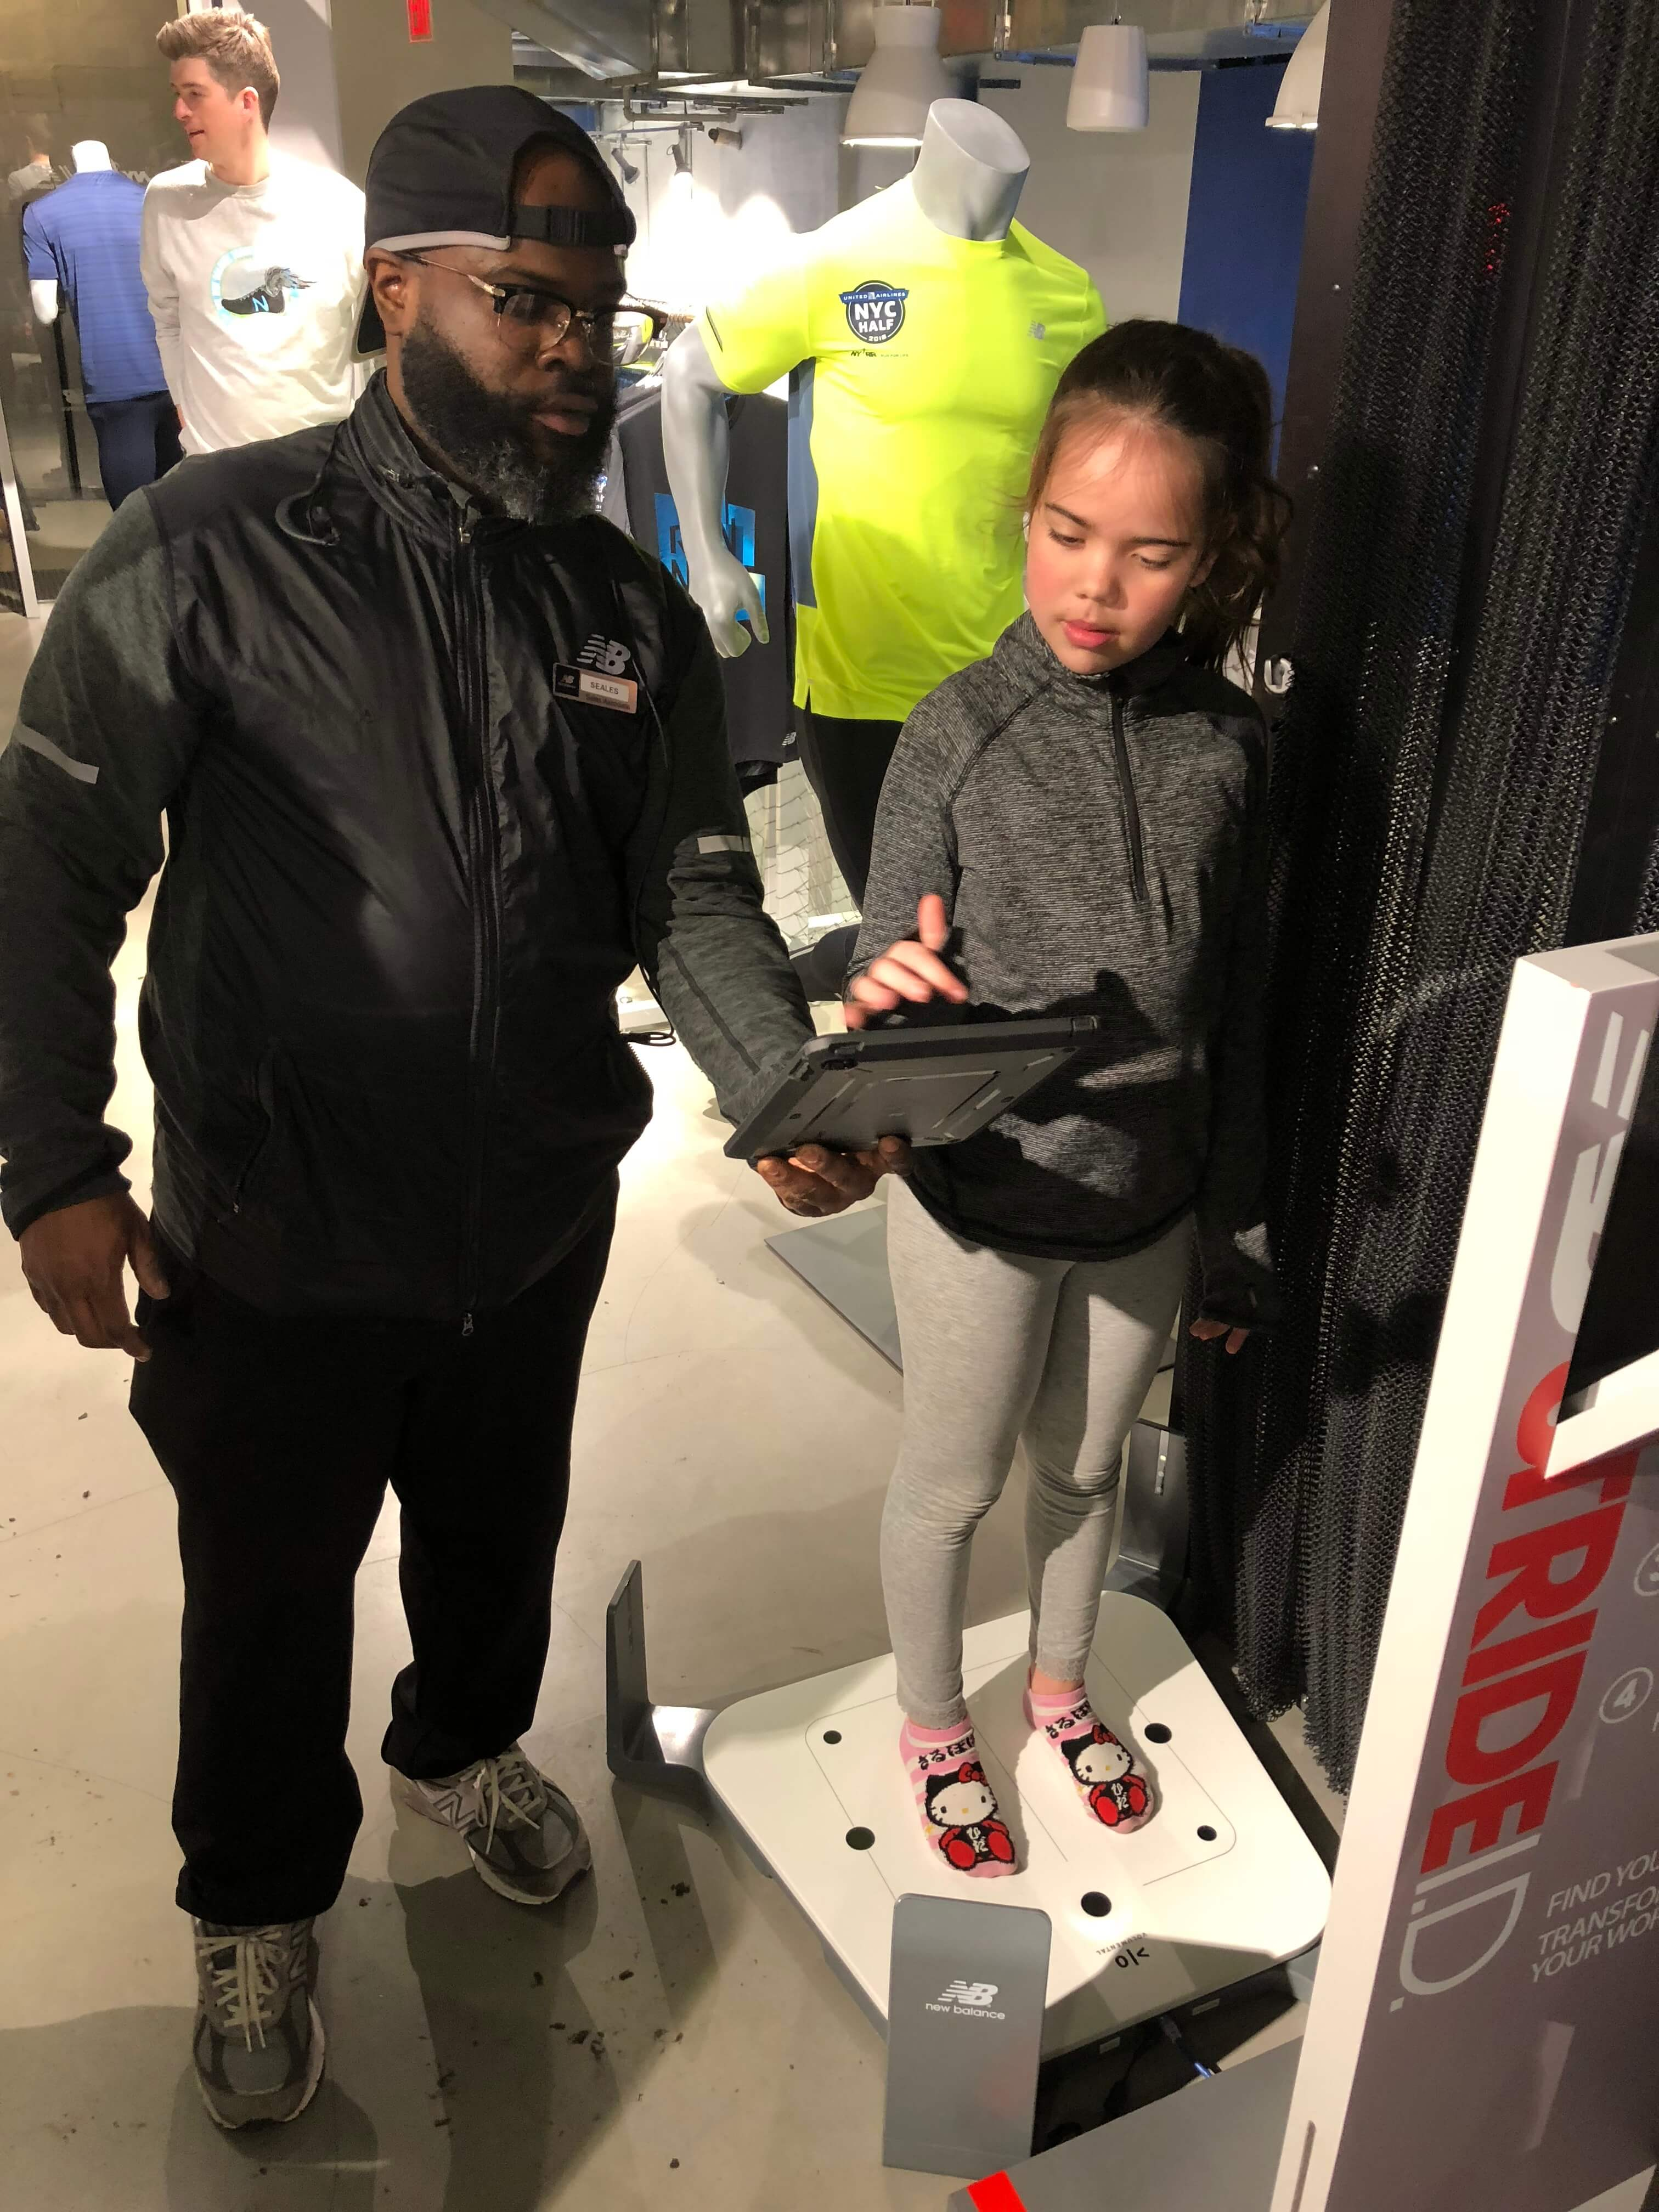 Rising New York Road Runners program and shoe fittings with new balance